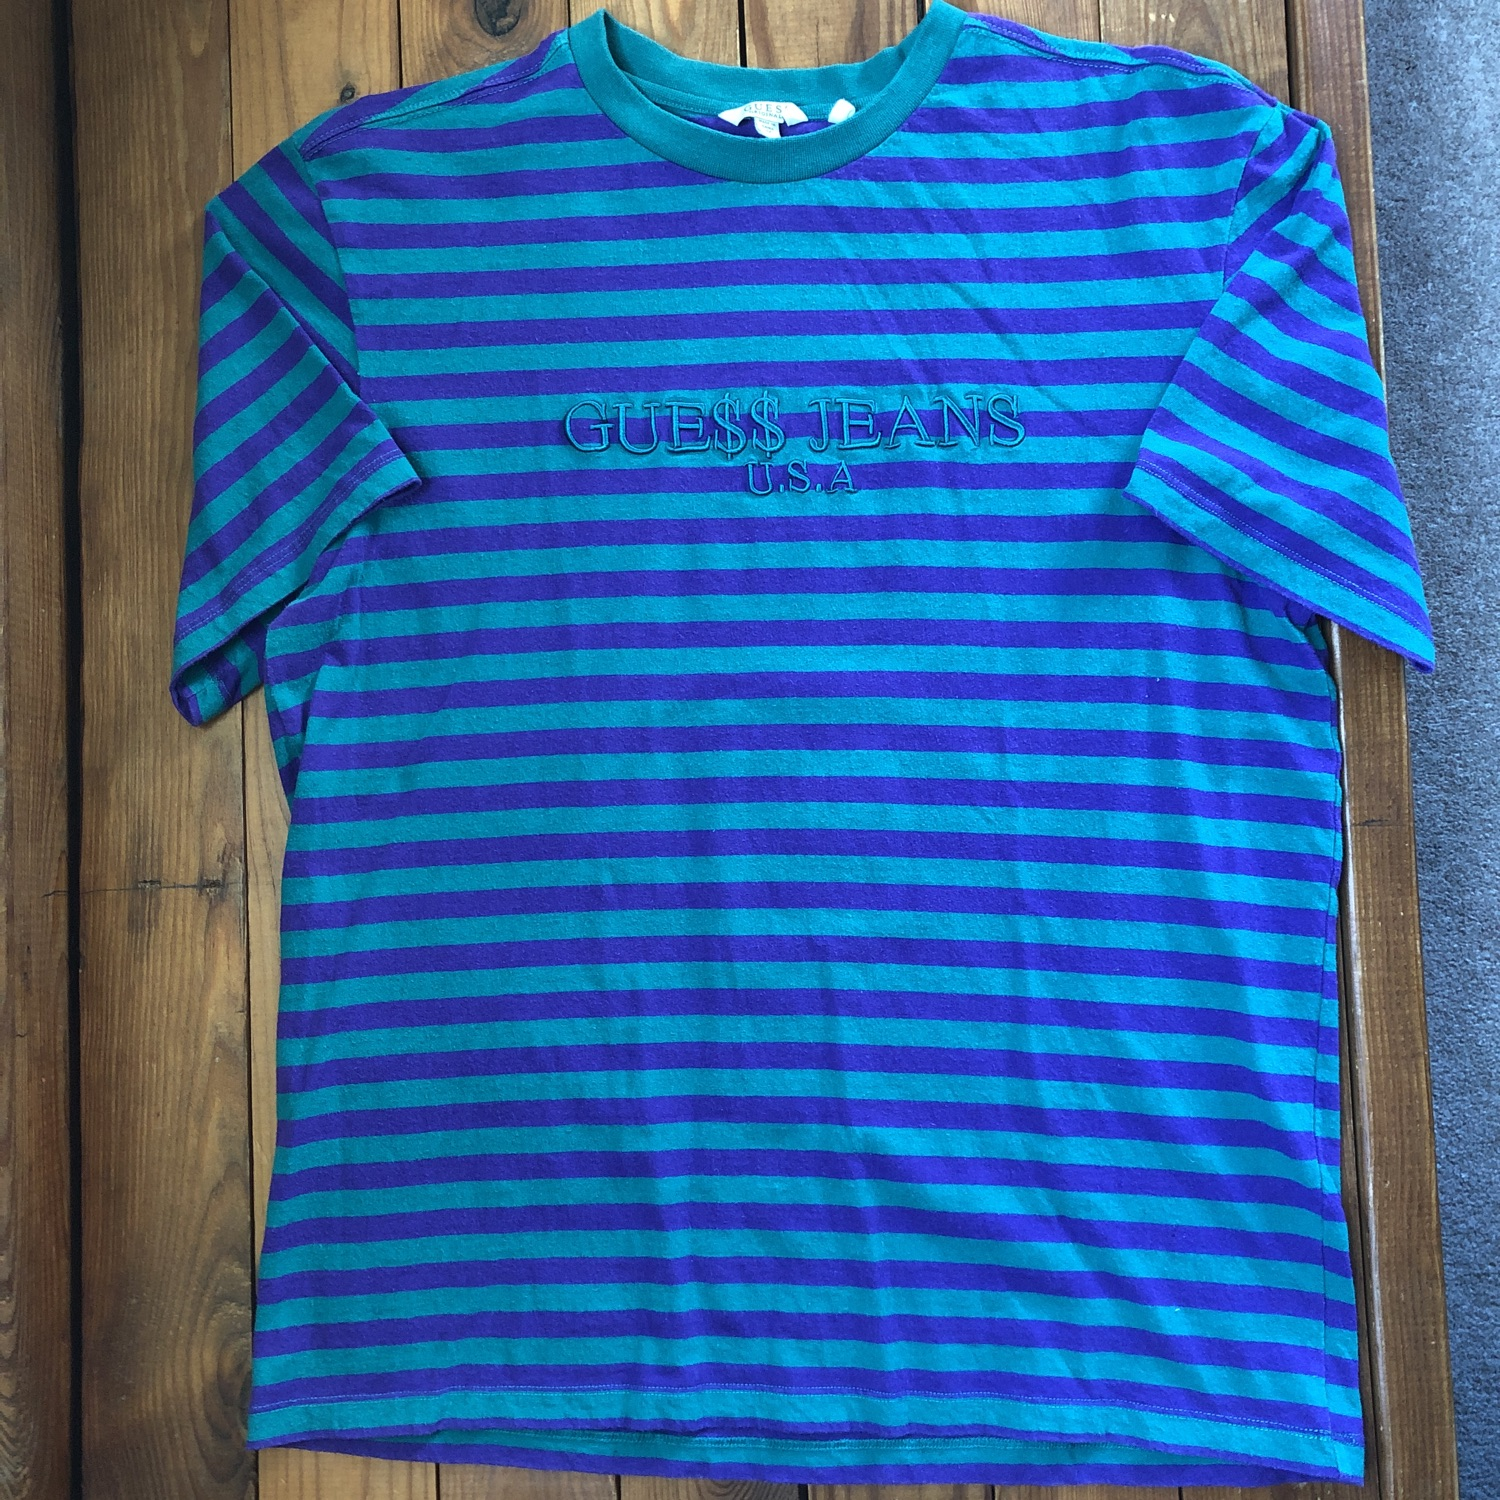 Og Release Guess X Asap Purple Green Striped Tee